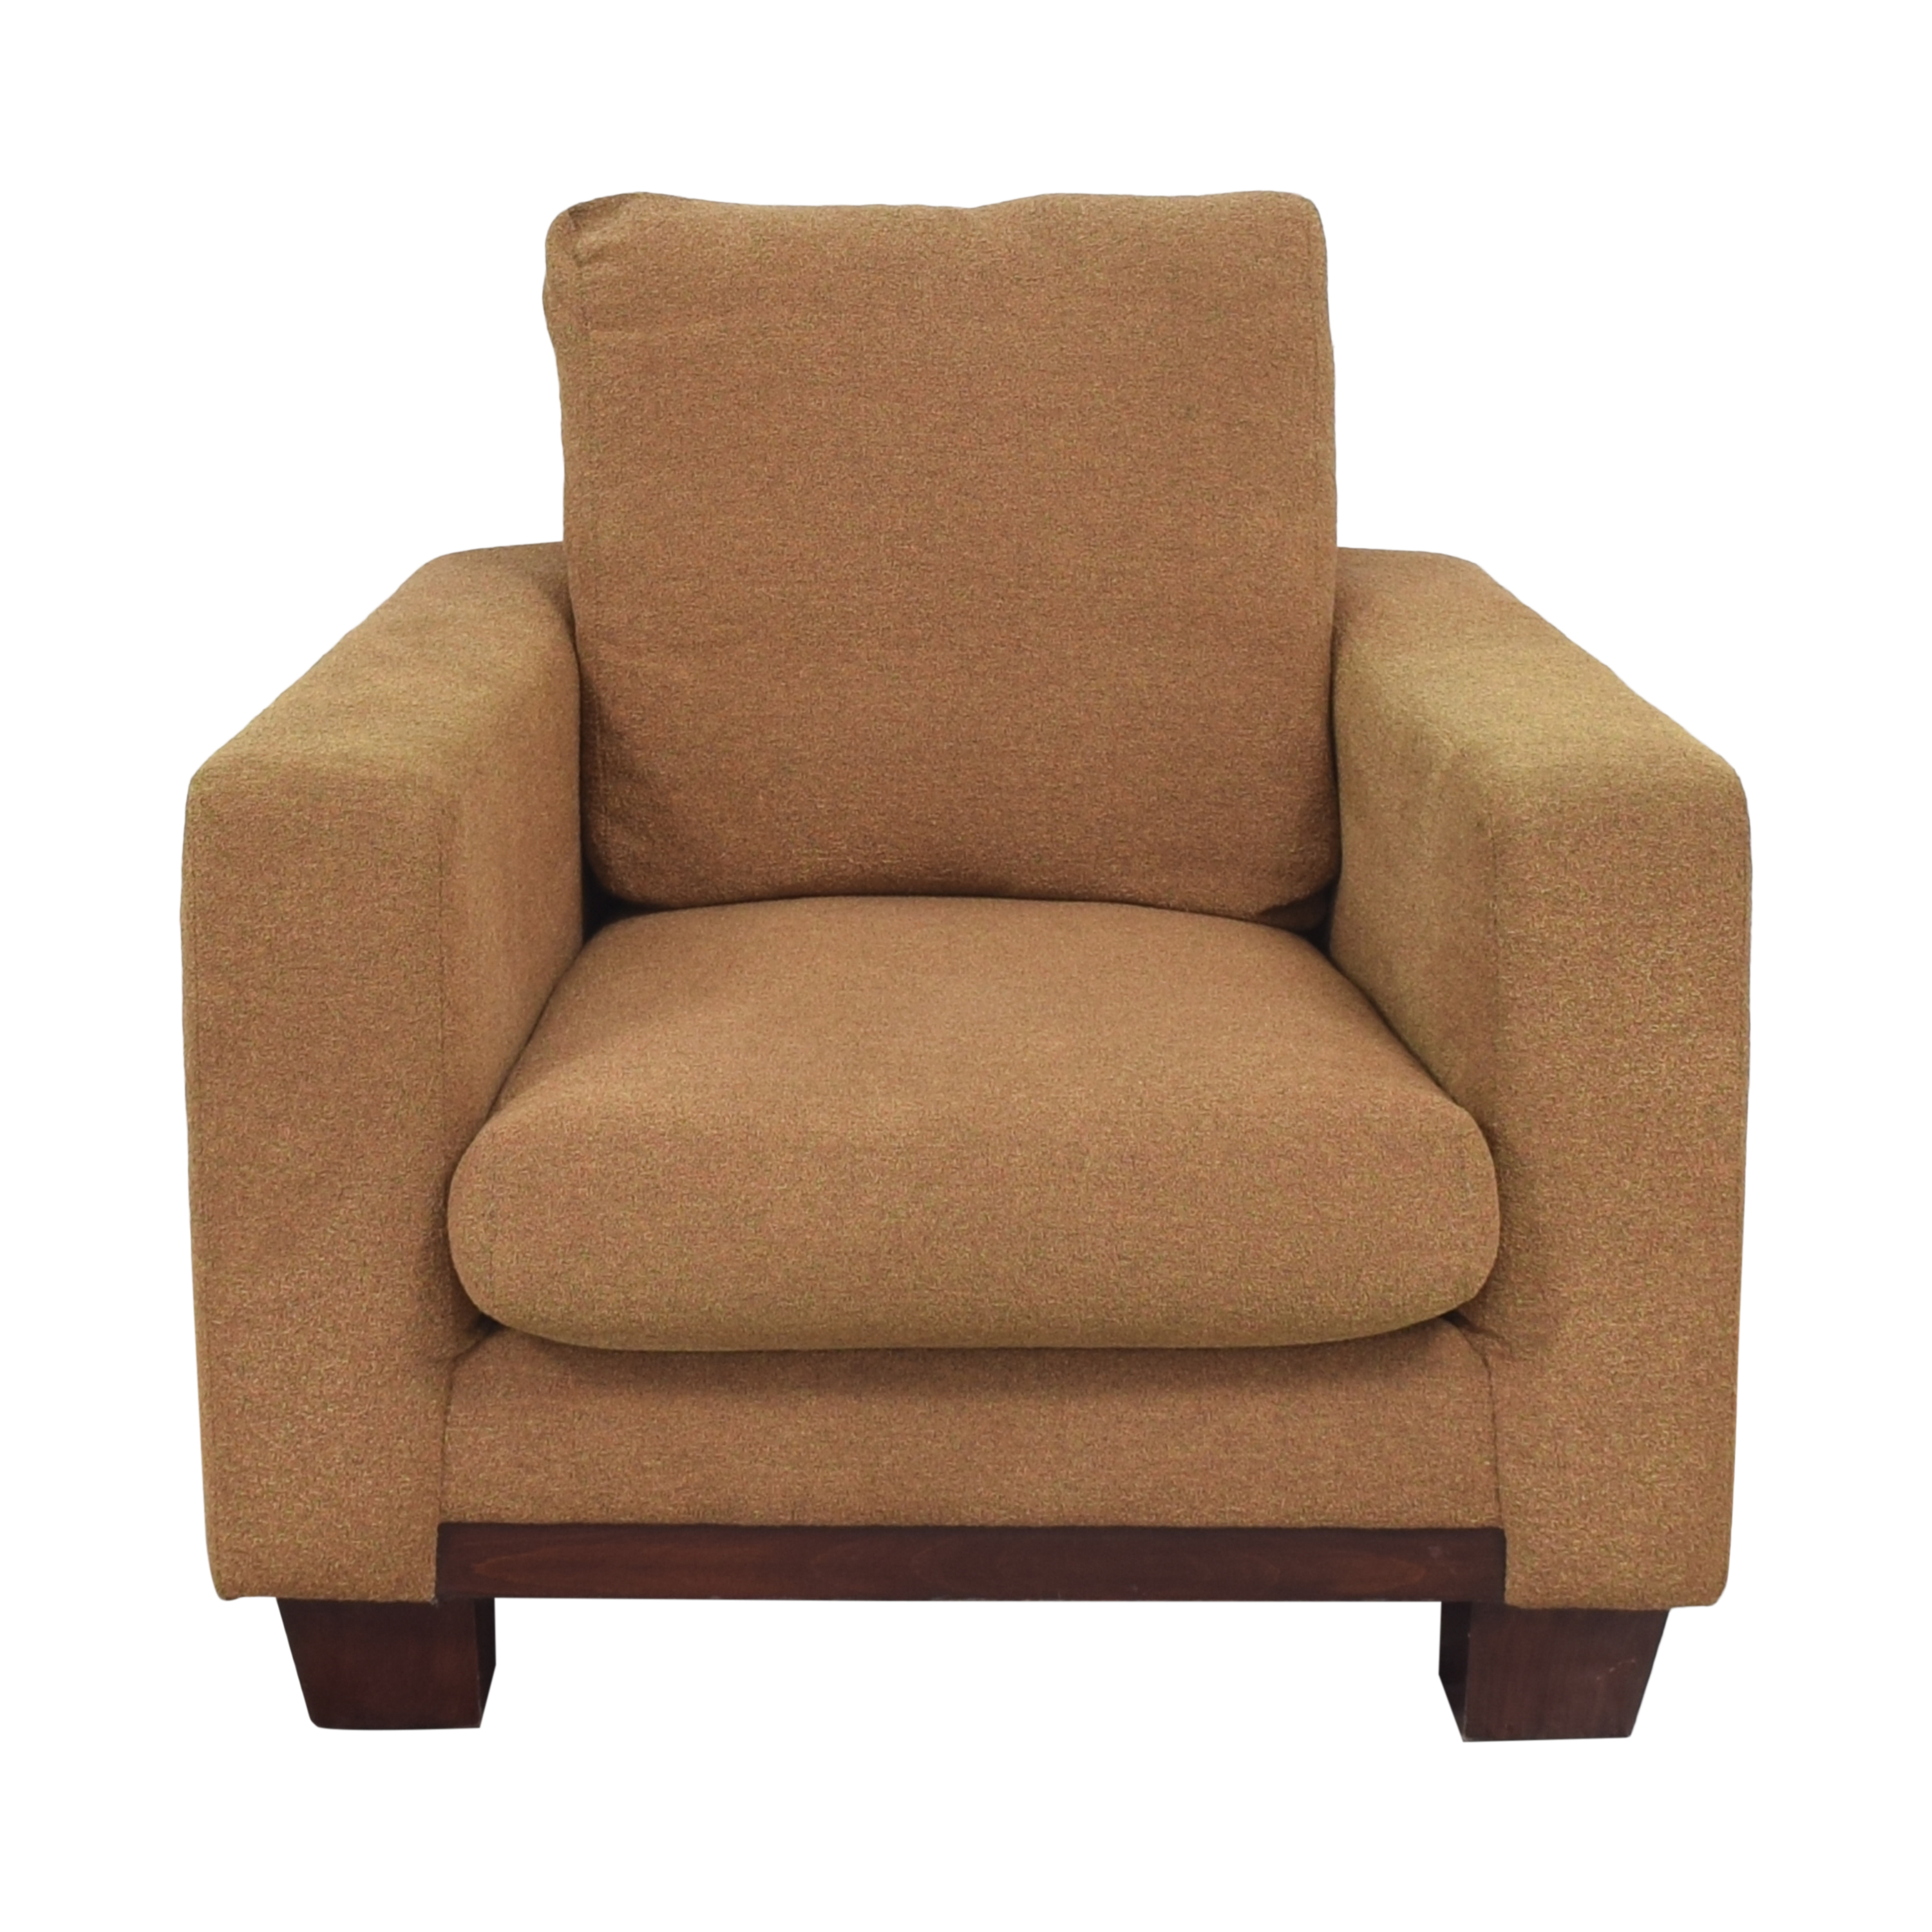 Dennis Miller by Ted Boerner Club Chair / Chairs